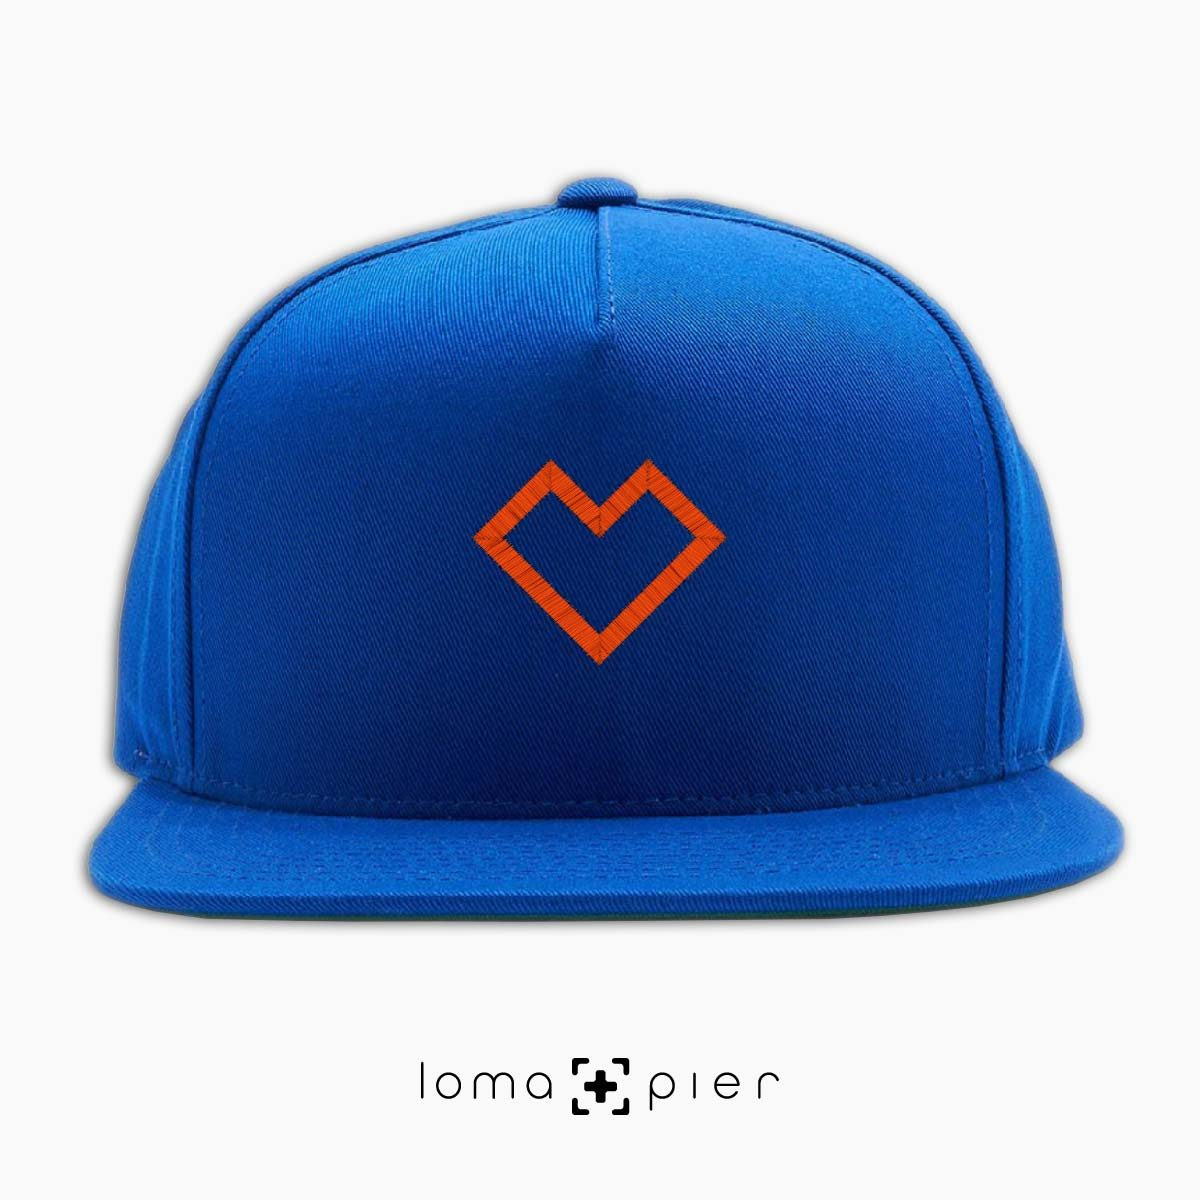 EDGY HEART icon embroidered on a royal blue classic snapback hat with white thread by loma+pier hat store